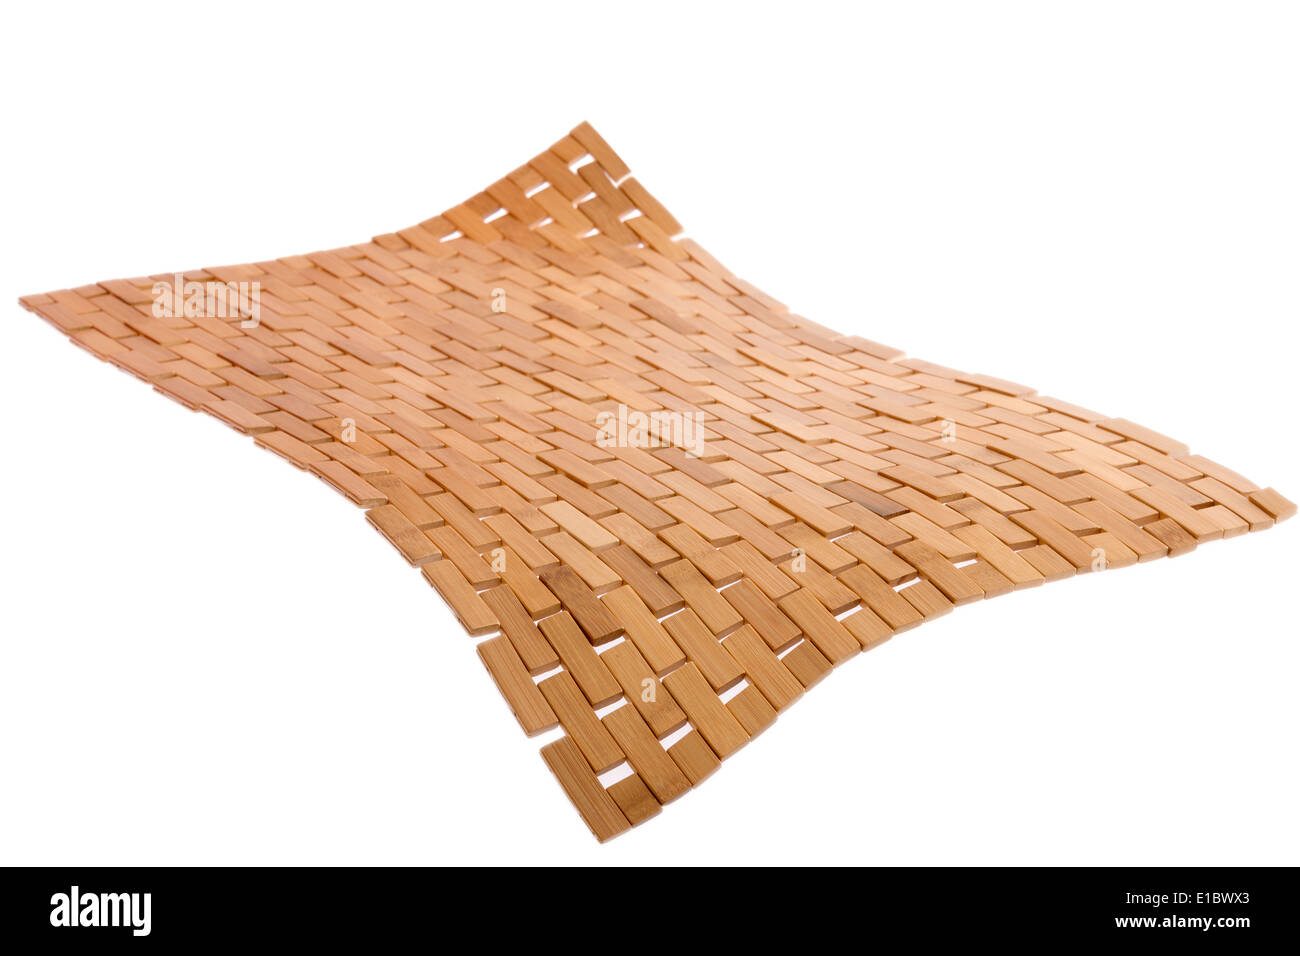 Whirling bamboo mat floating in the air isolated on white with a diagonal perspective and corner bent down in the foreground sho - Stock Image